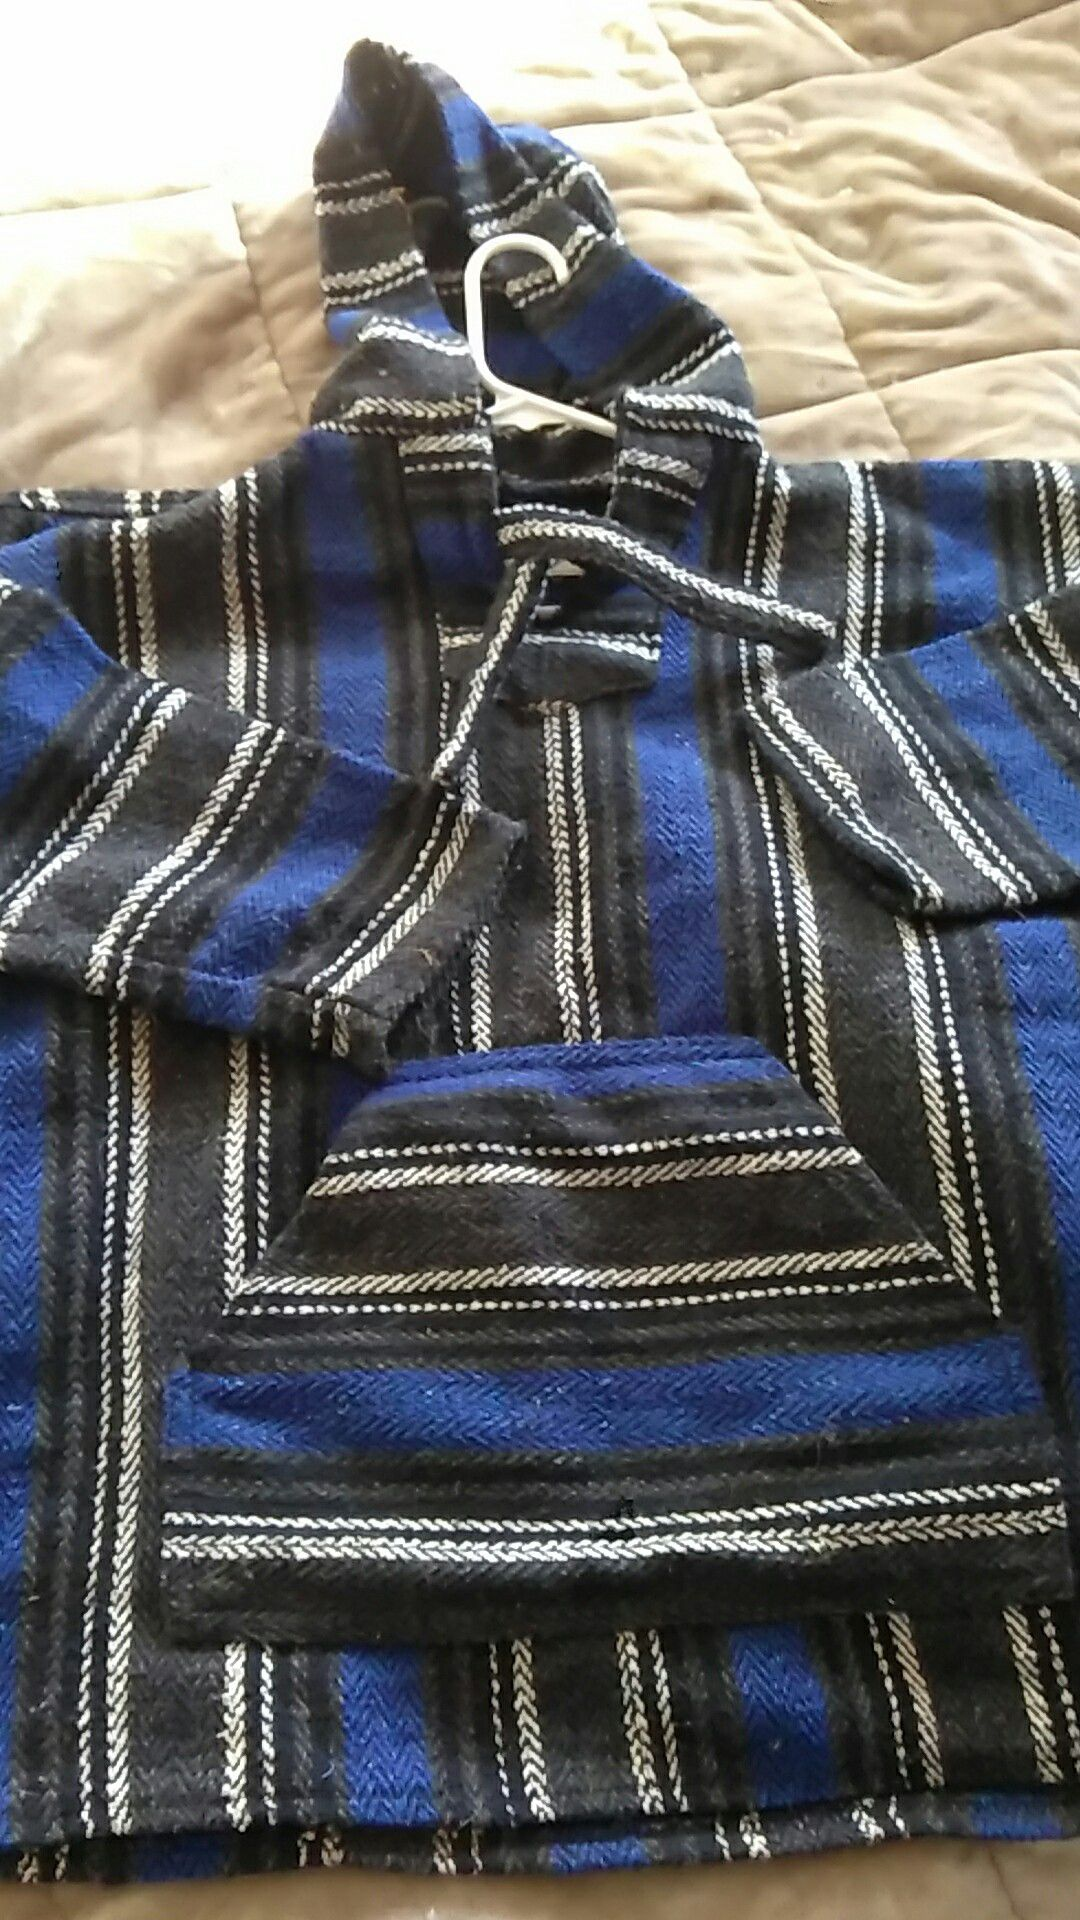 Awesome pull over Earth ragz brand size med